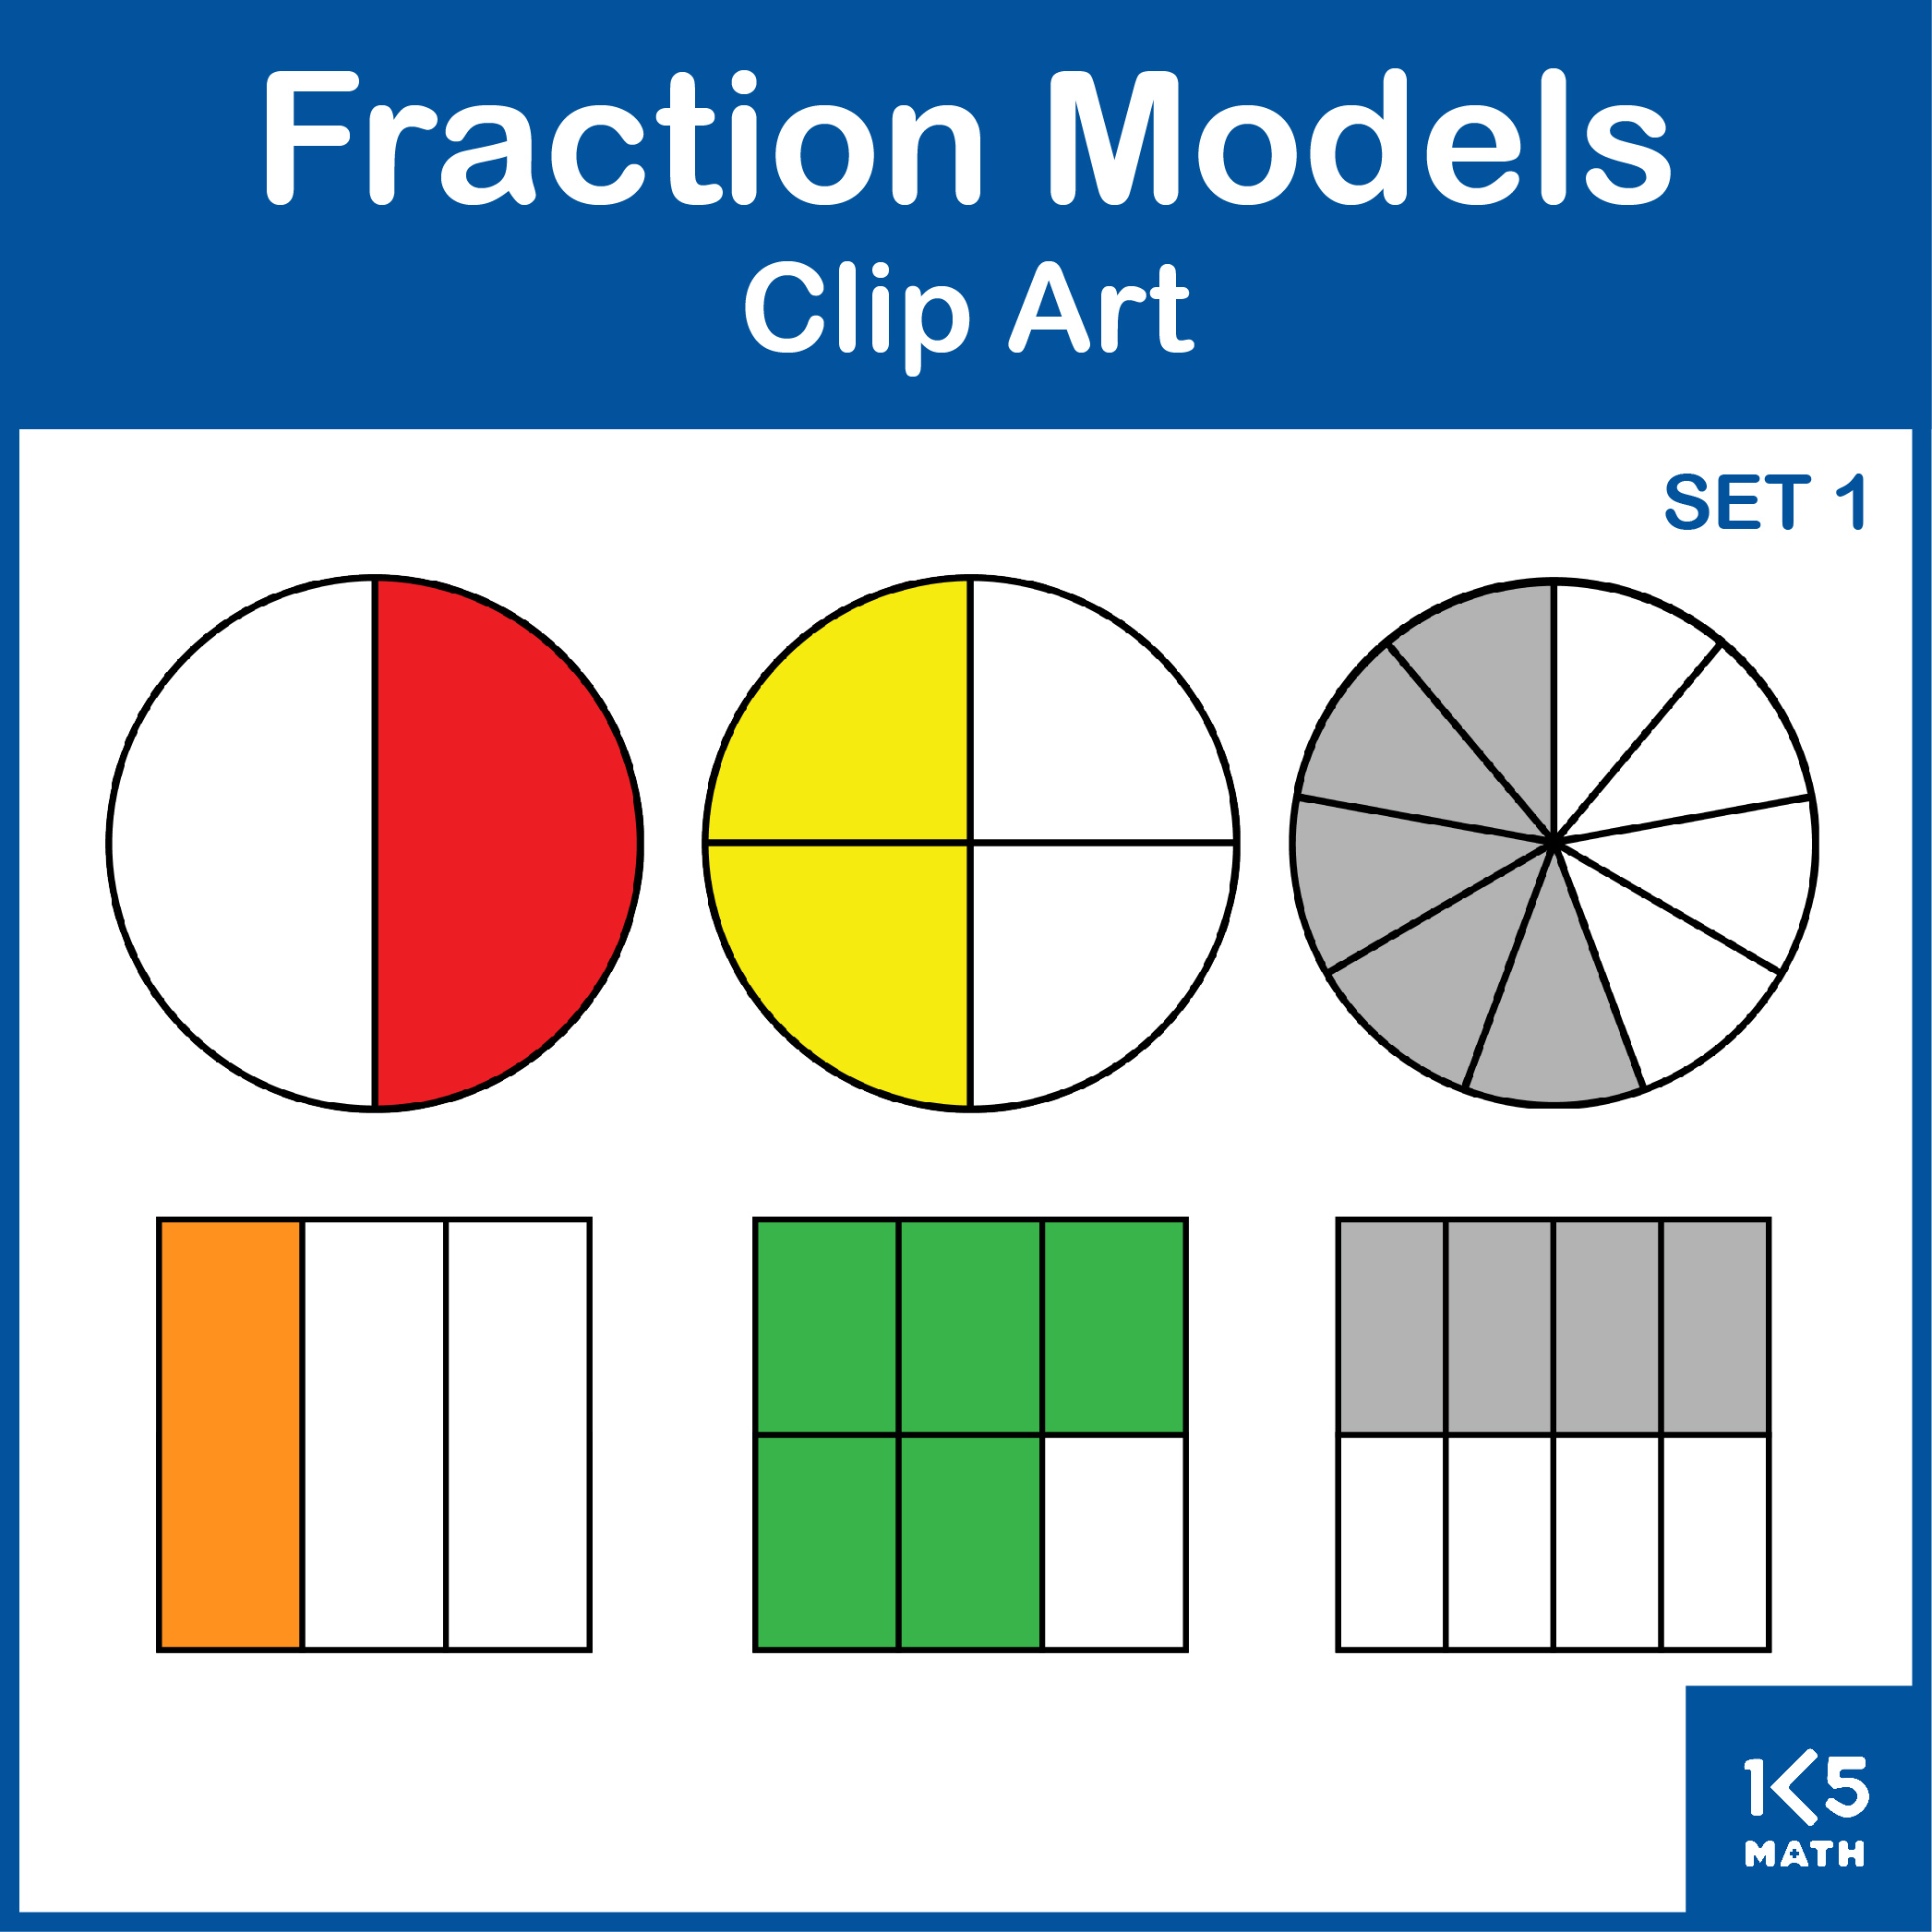 Fraction Models Clip Art Set 1